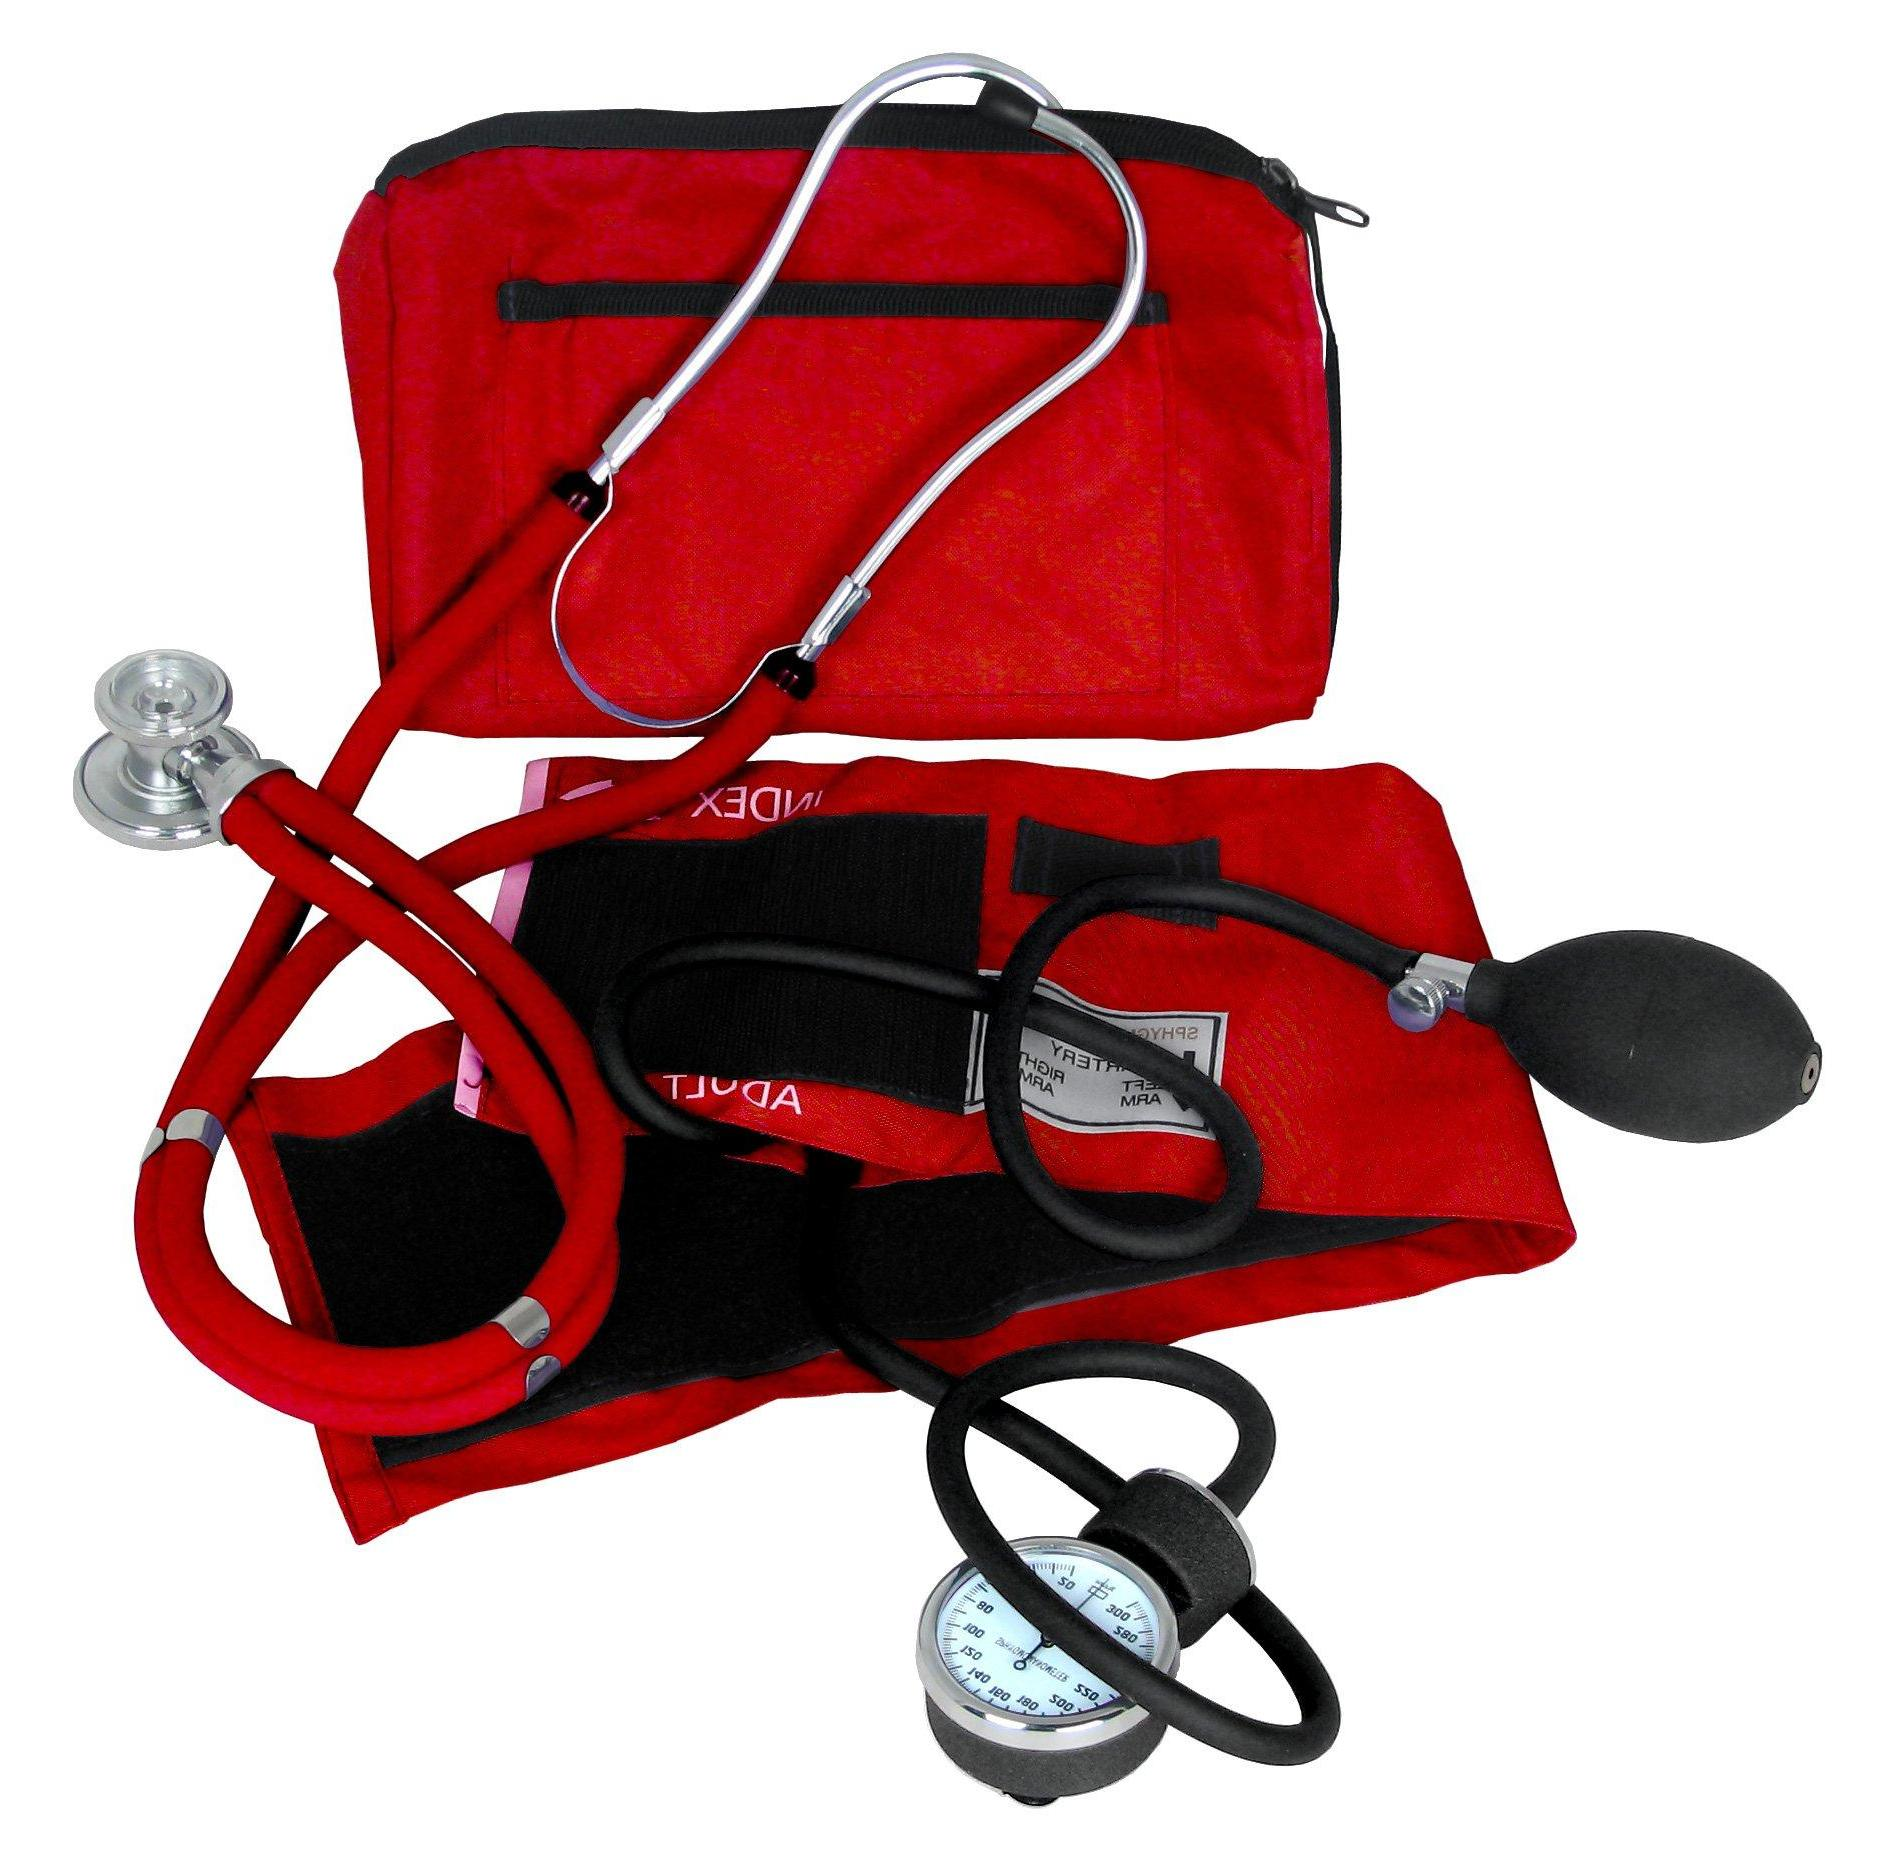 rappaport stethoscope blood pressure cuff